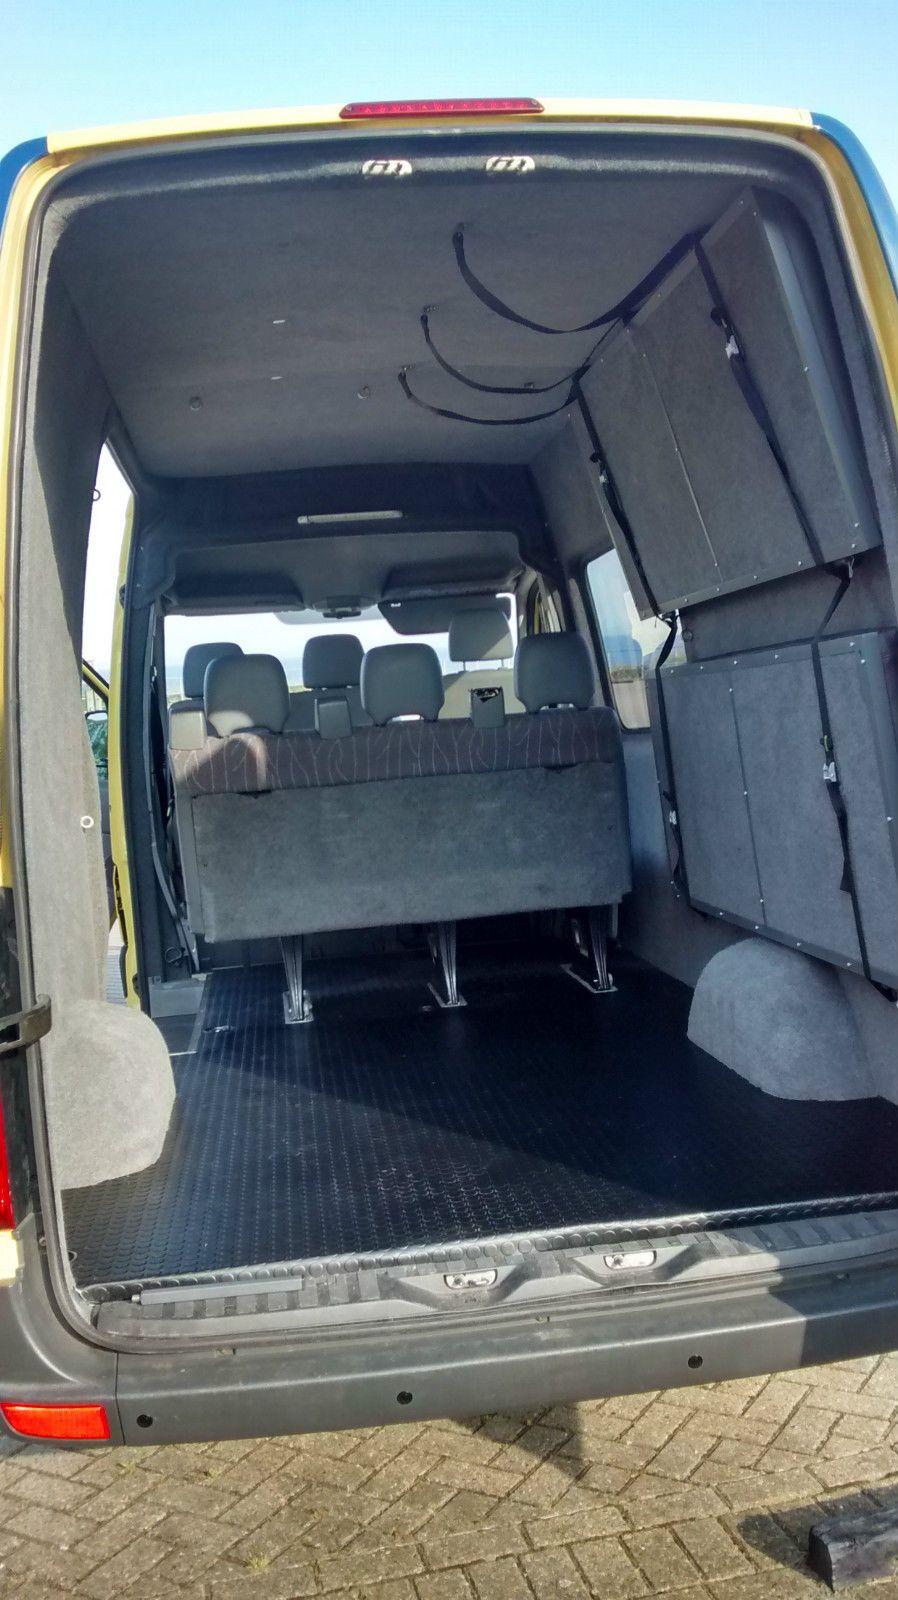 Vw Crafter 6 Seater 4 Berth Camper Day Mountain Bike Surf Van Band Bus Sprinter Camper Van Conversion Diy Sprinter Camper Van Camping